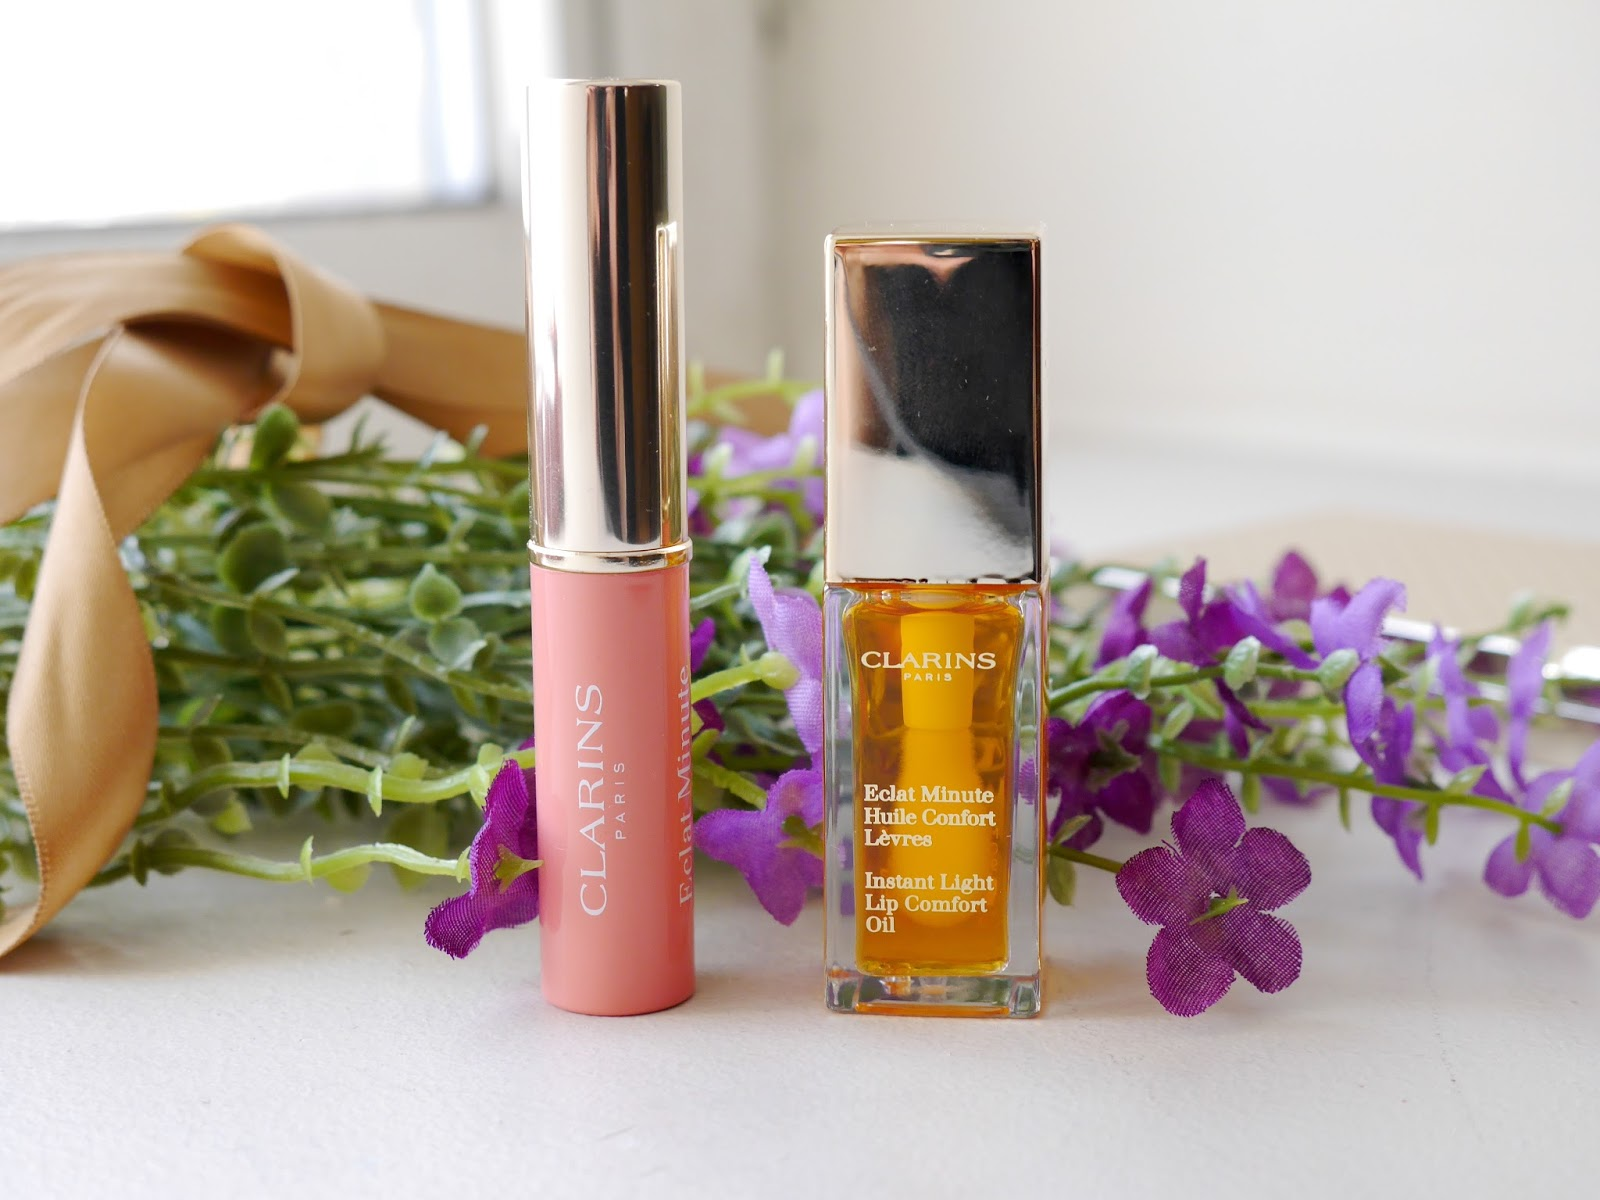 Clarins Lip Comfort Oil honey and Instant Light Lip Balm Protector rose review